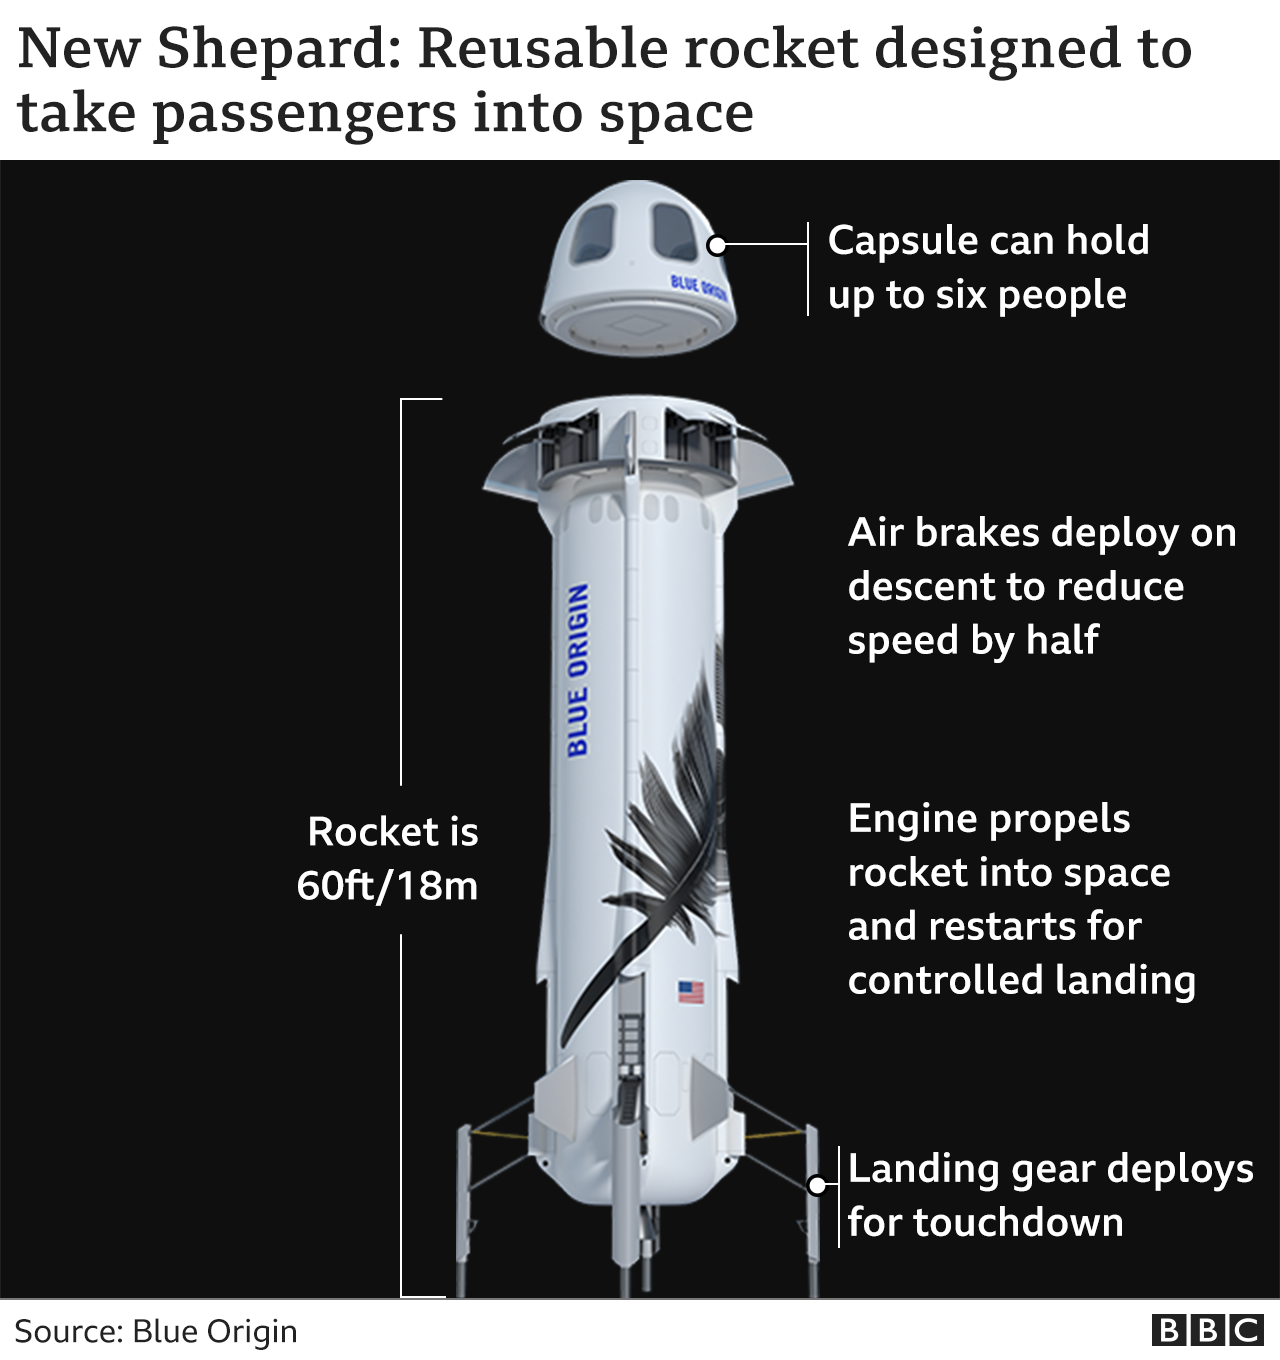 New Shepard rocket - annotated image